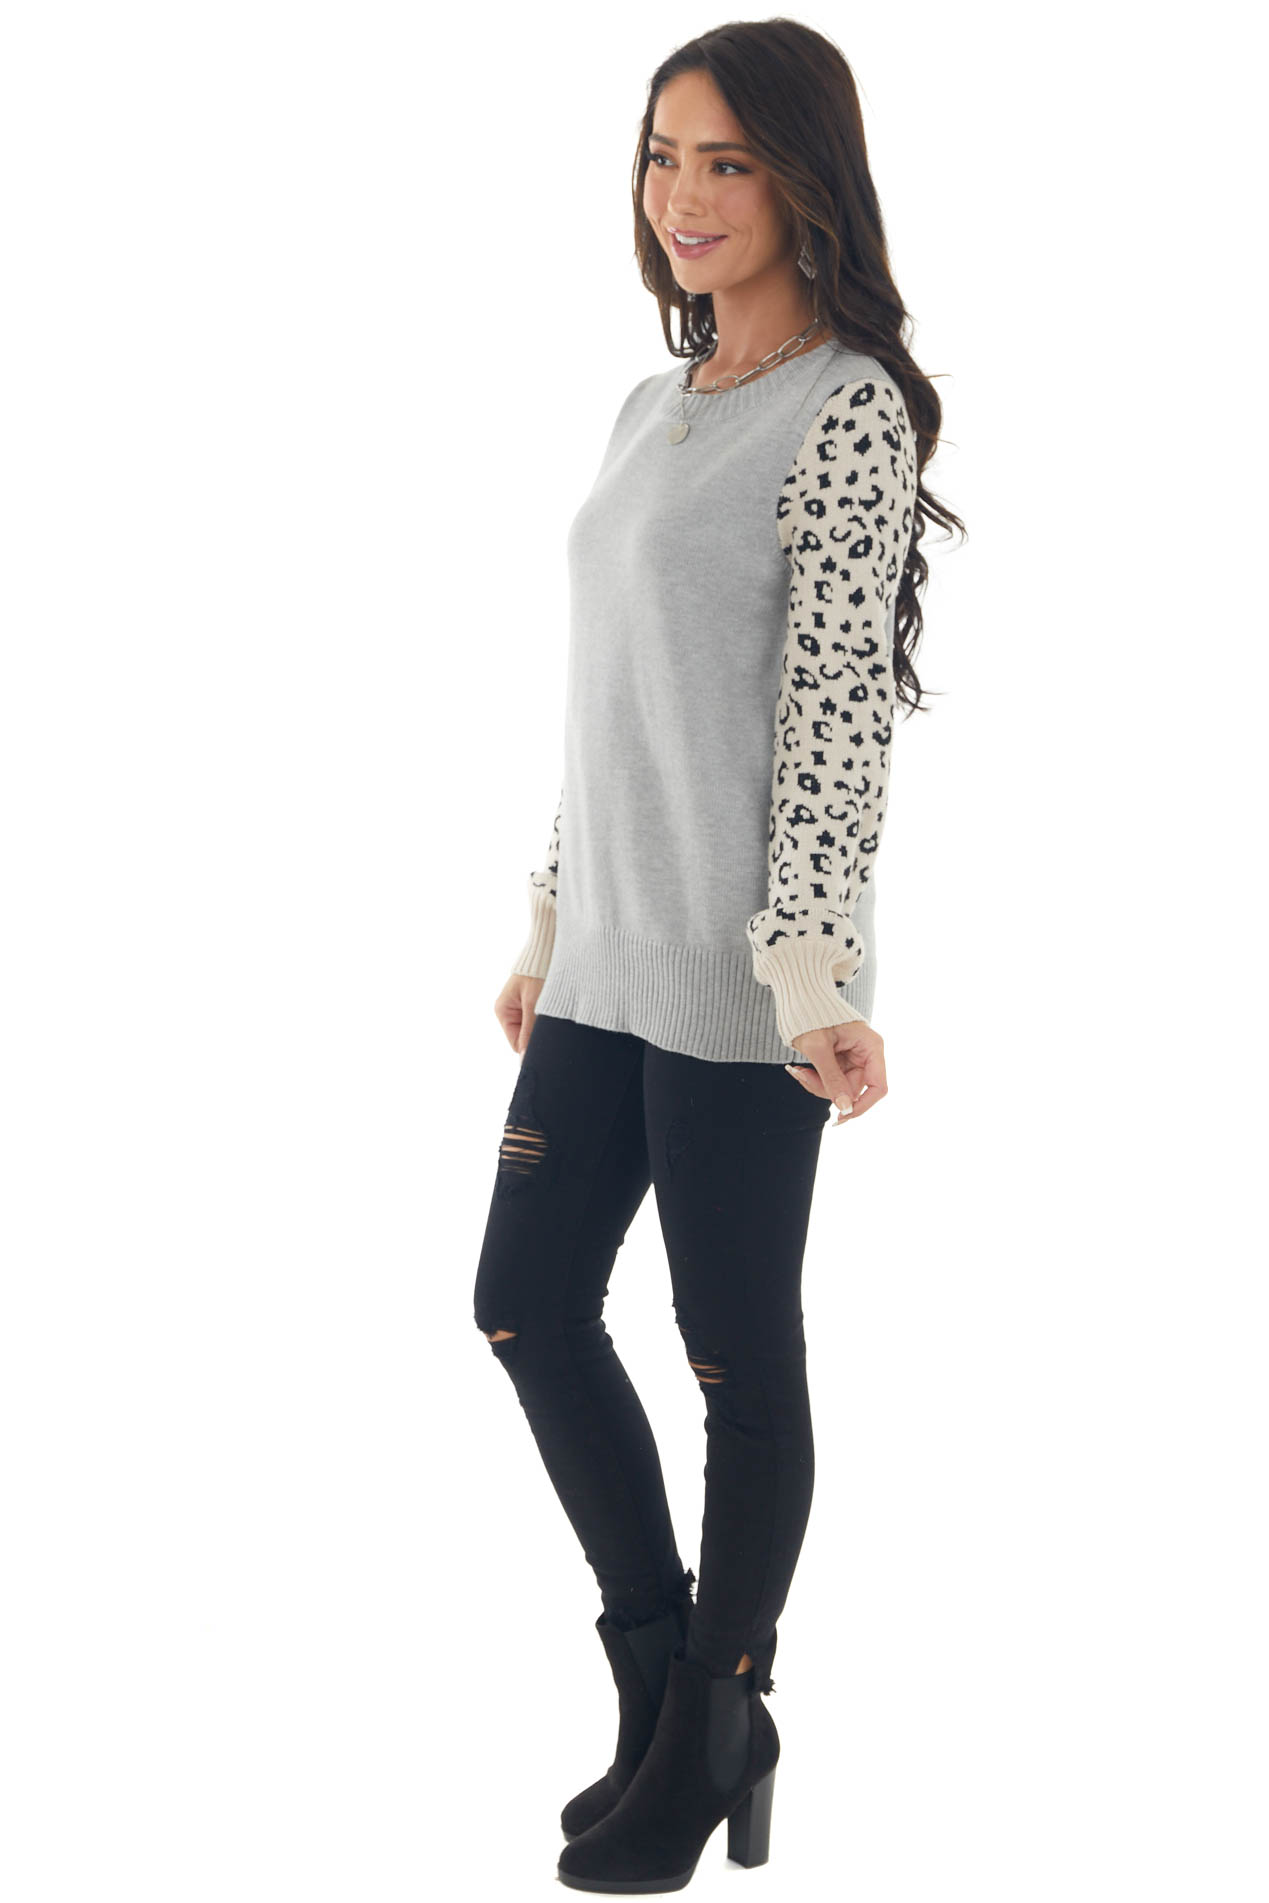 Heather Grey and Leopard Print Knit Sweater